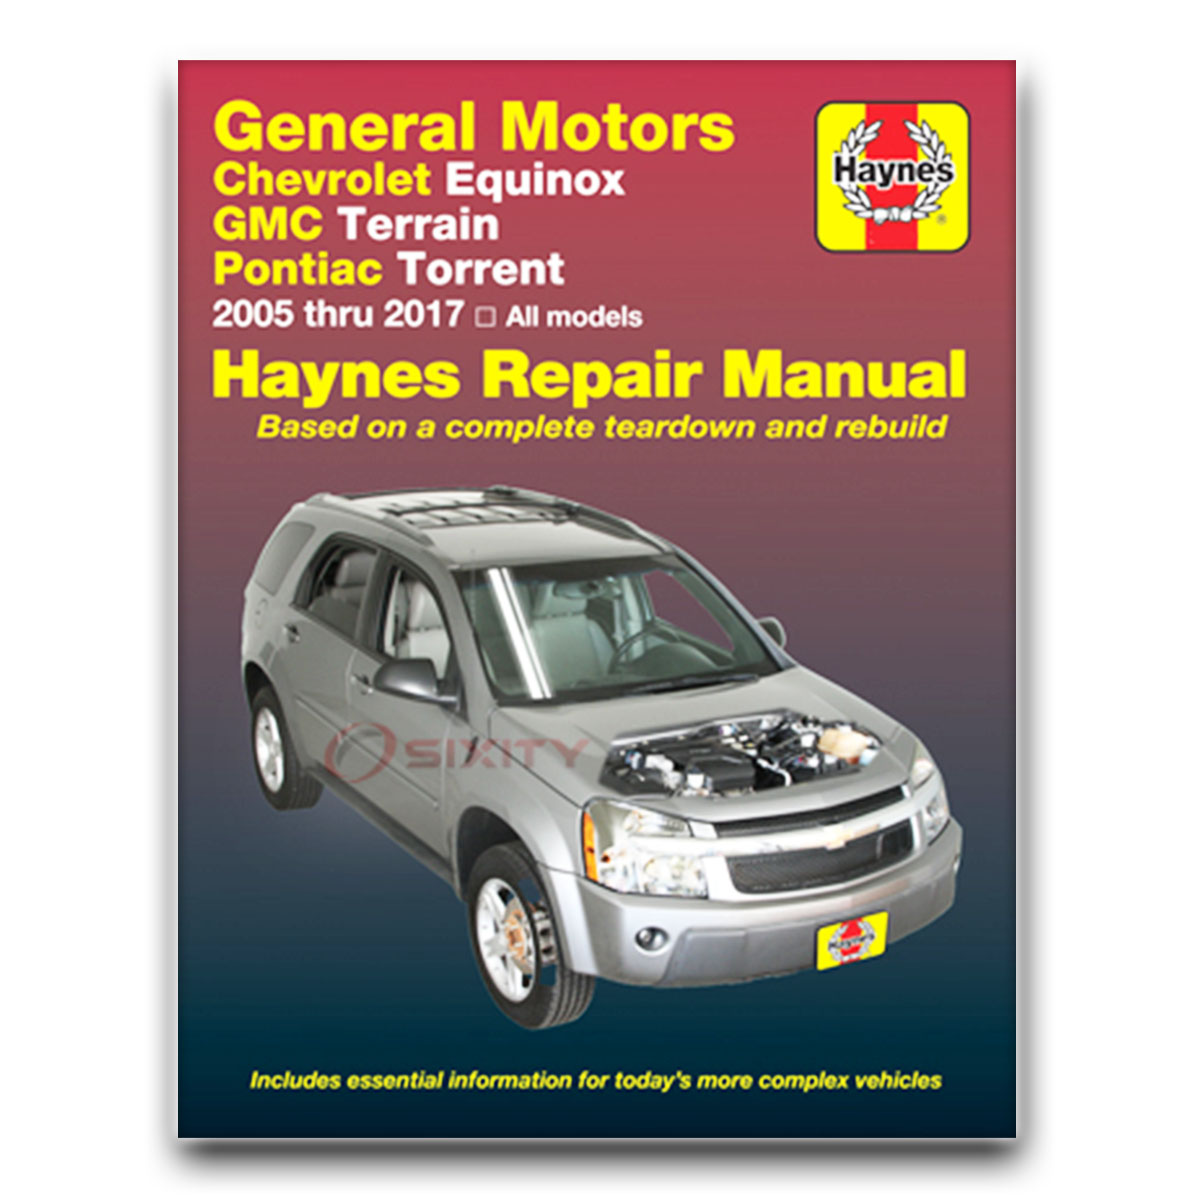 Haynes Repair Manual 38040 for Chevrolet Equinox Pontiac Torrent 05-09 Shop  zy